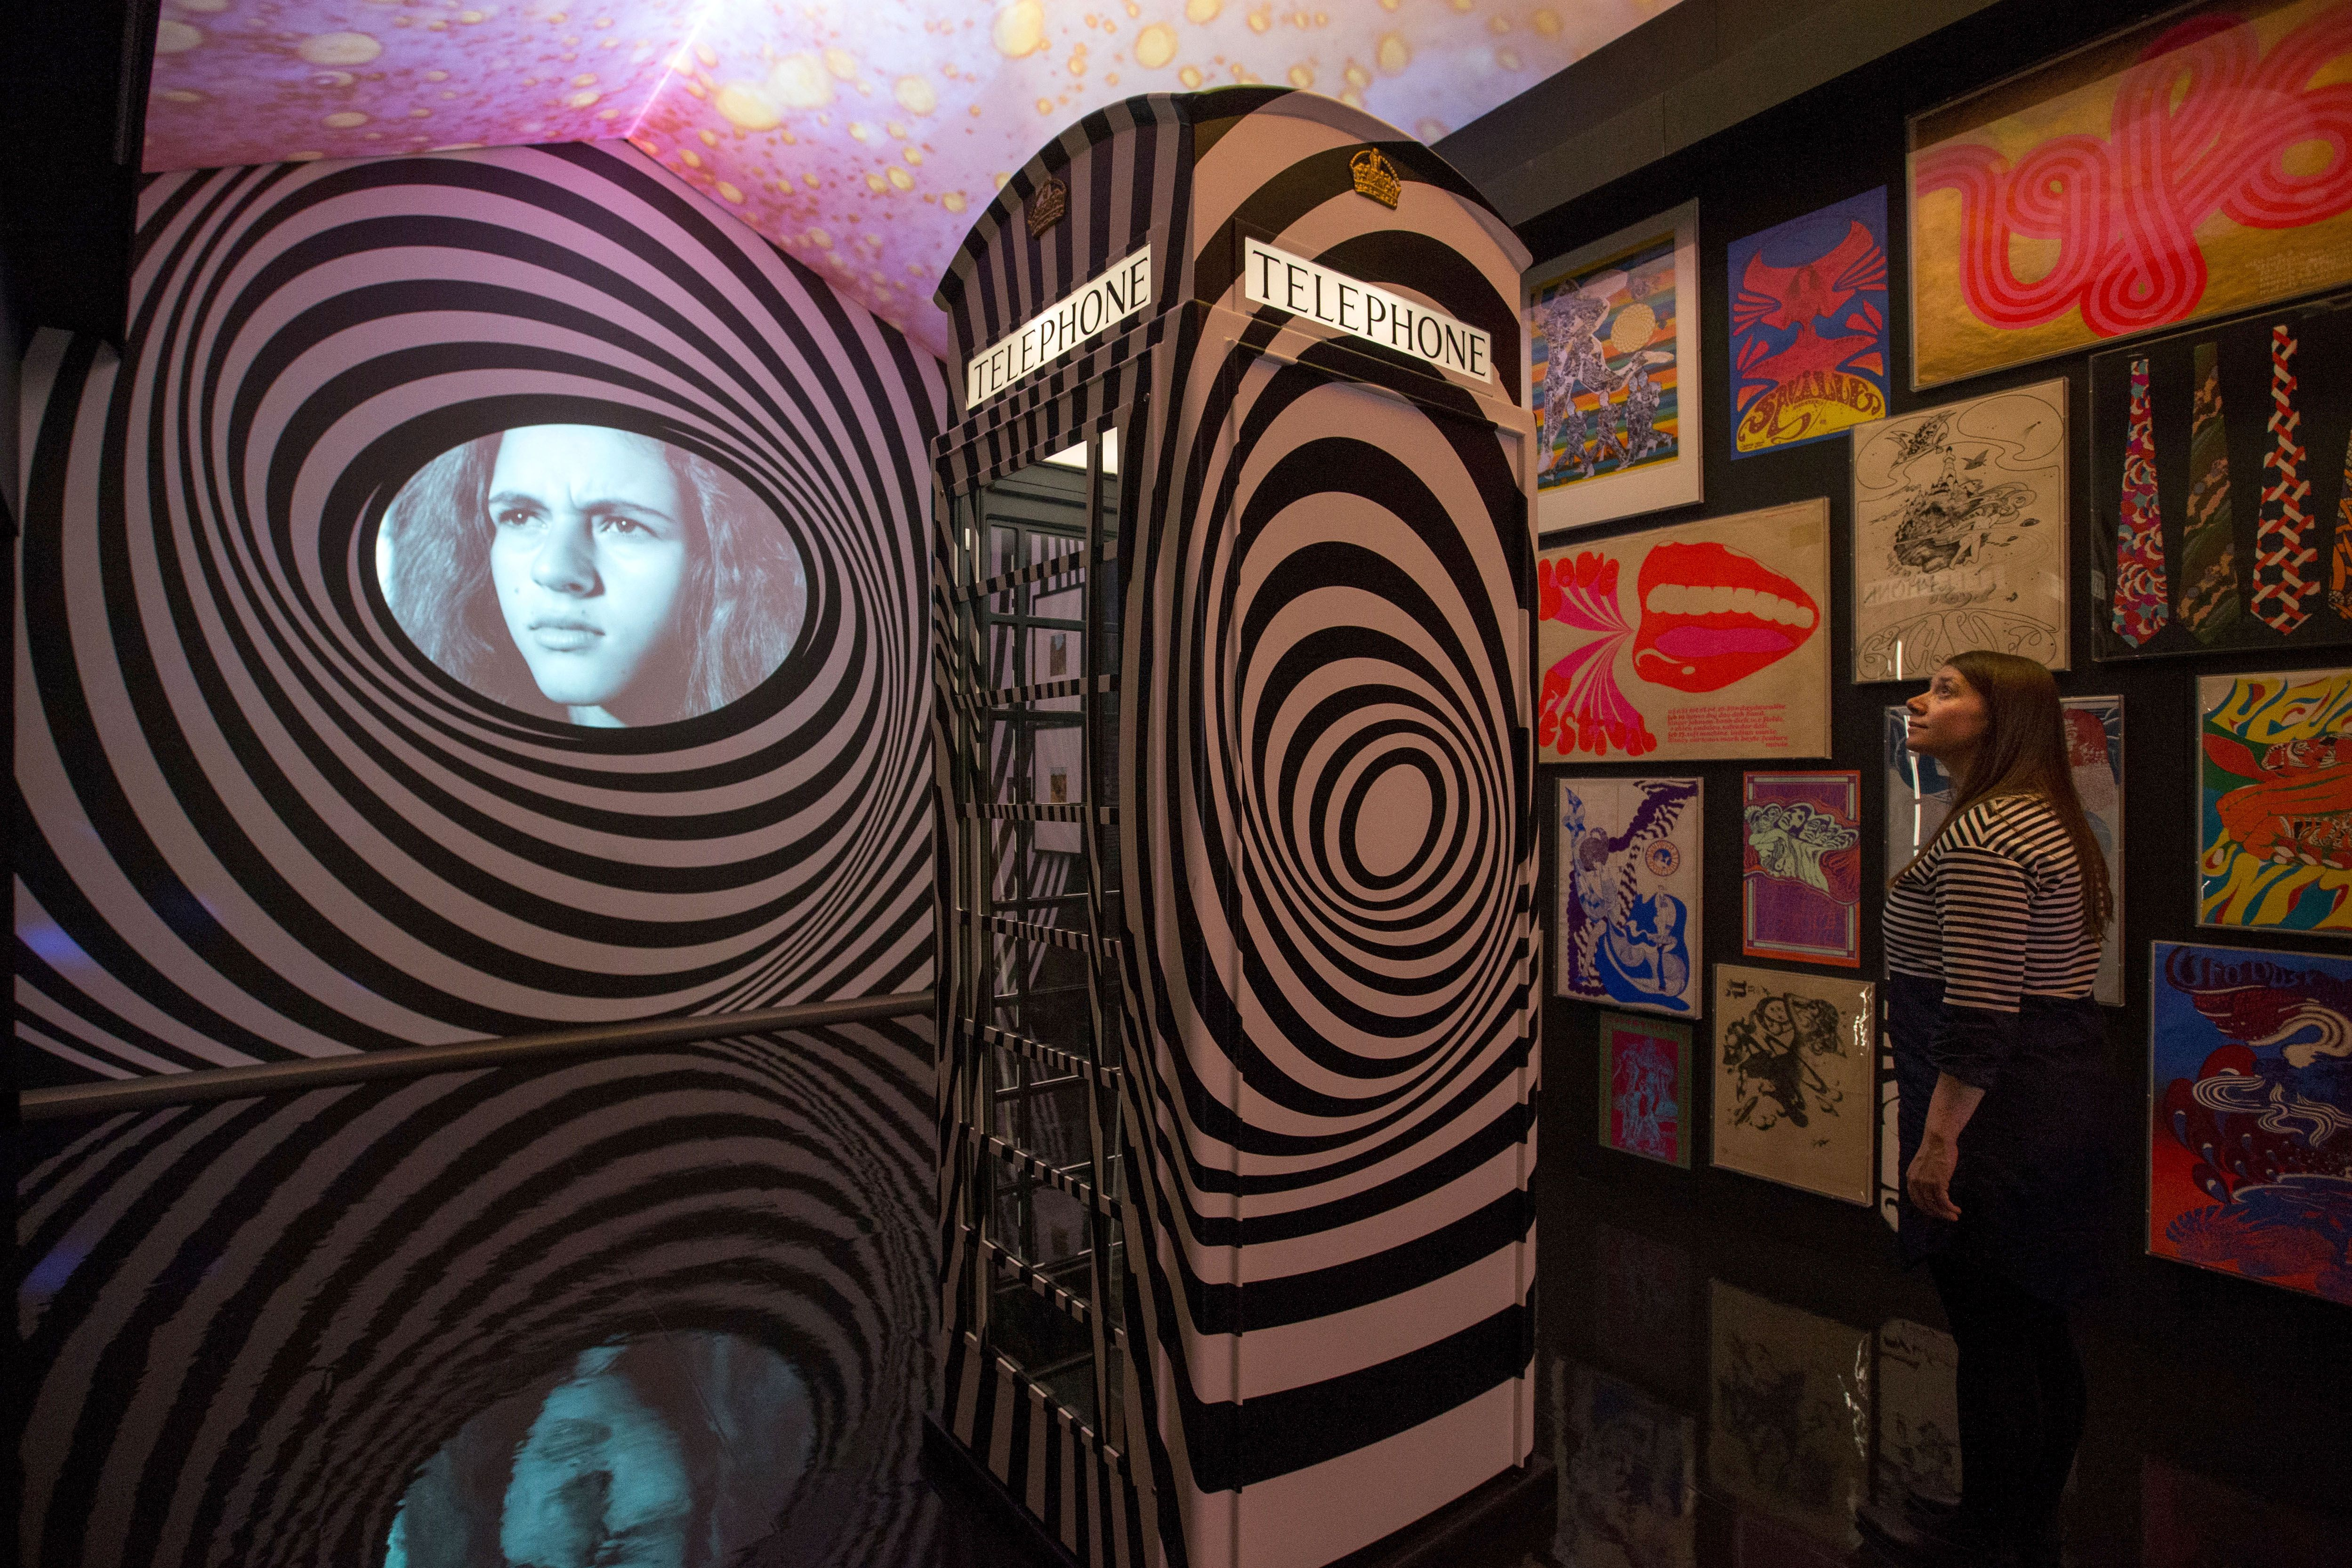 A member of staff poses at the 'Down the rabbit hole' room, featuring a telephone cabin, which was inspired by the famous psychedelic UFO club in London and English painter Bridget Riley's 1965 'Untitled' screen print of Plexiglas, during a photocall at the 'The Pink Floyd Exhibition: Their Mortal Remains' at the Victoria and Albert Museum in west London on May 9, 2017. (Photo: Daniel Leal-Olivas / AFP / Getty Images)